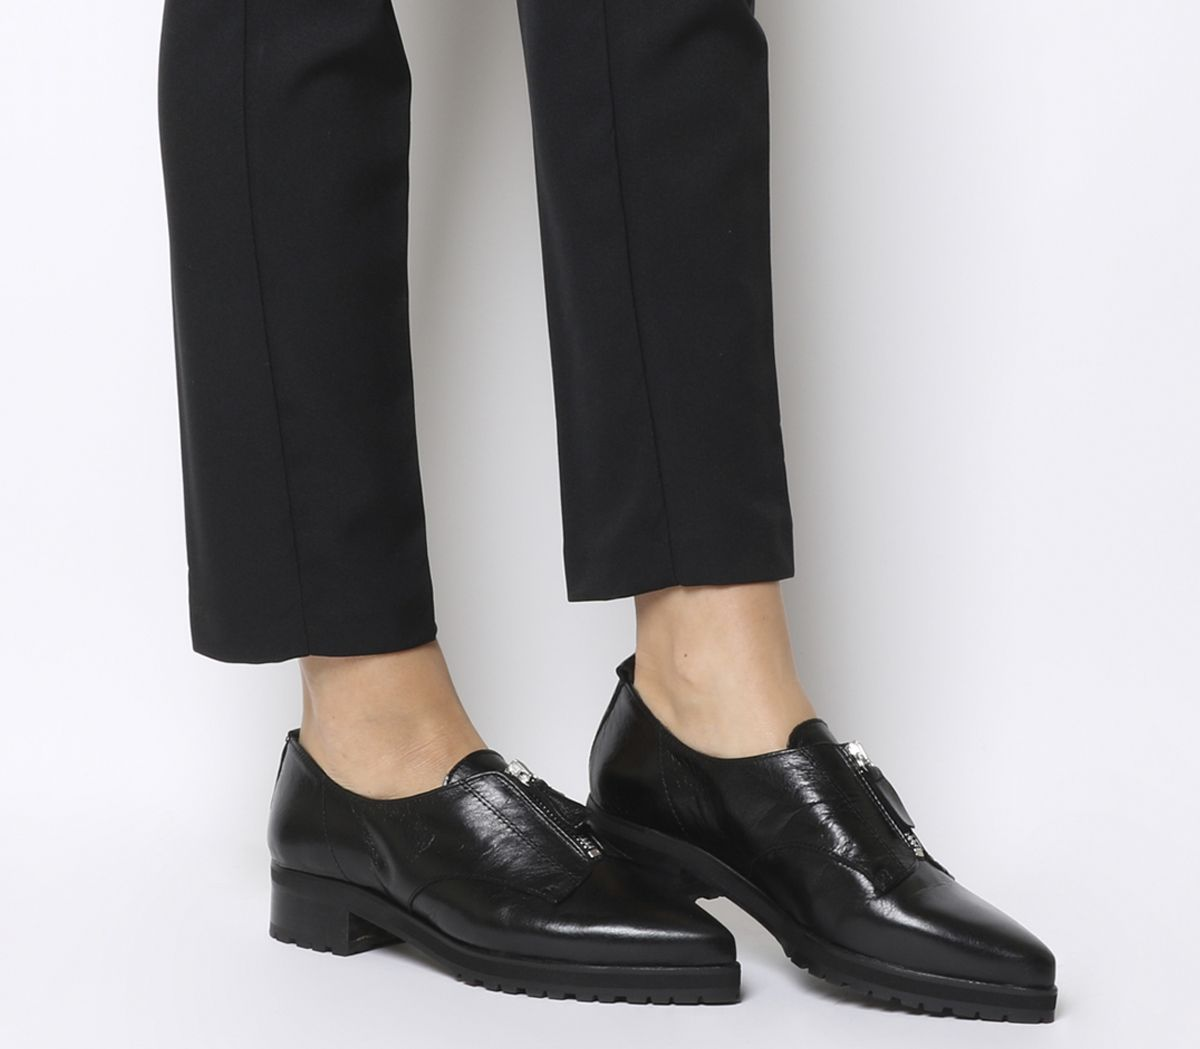 57ed3952813 Office Foster Zip Front Cleated Shoes Black Leather - Flats